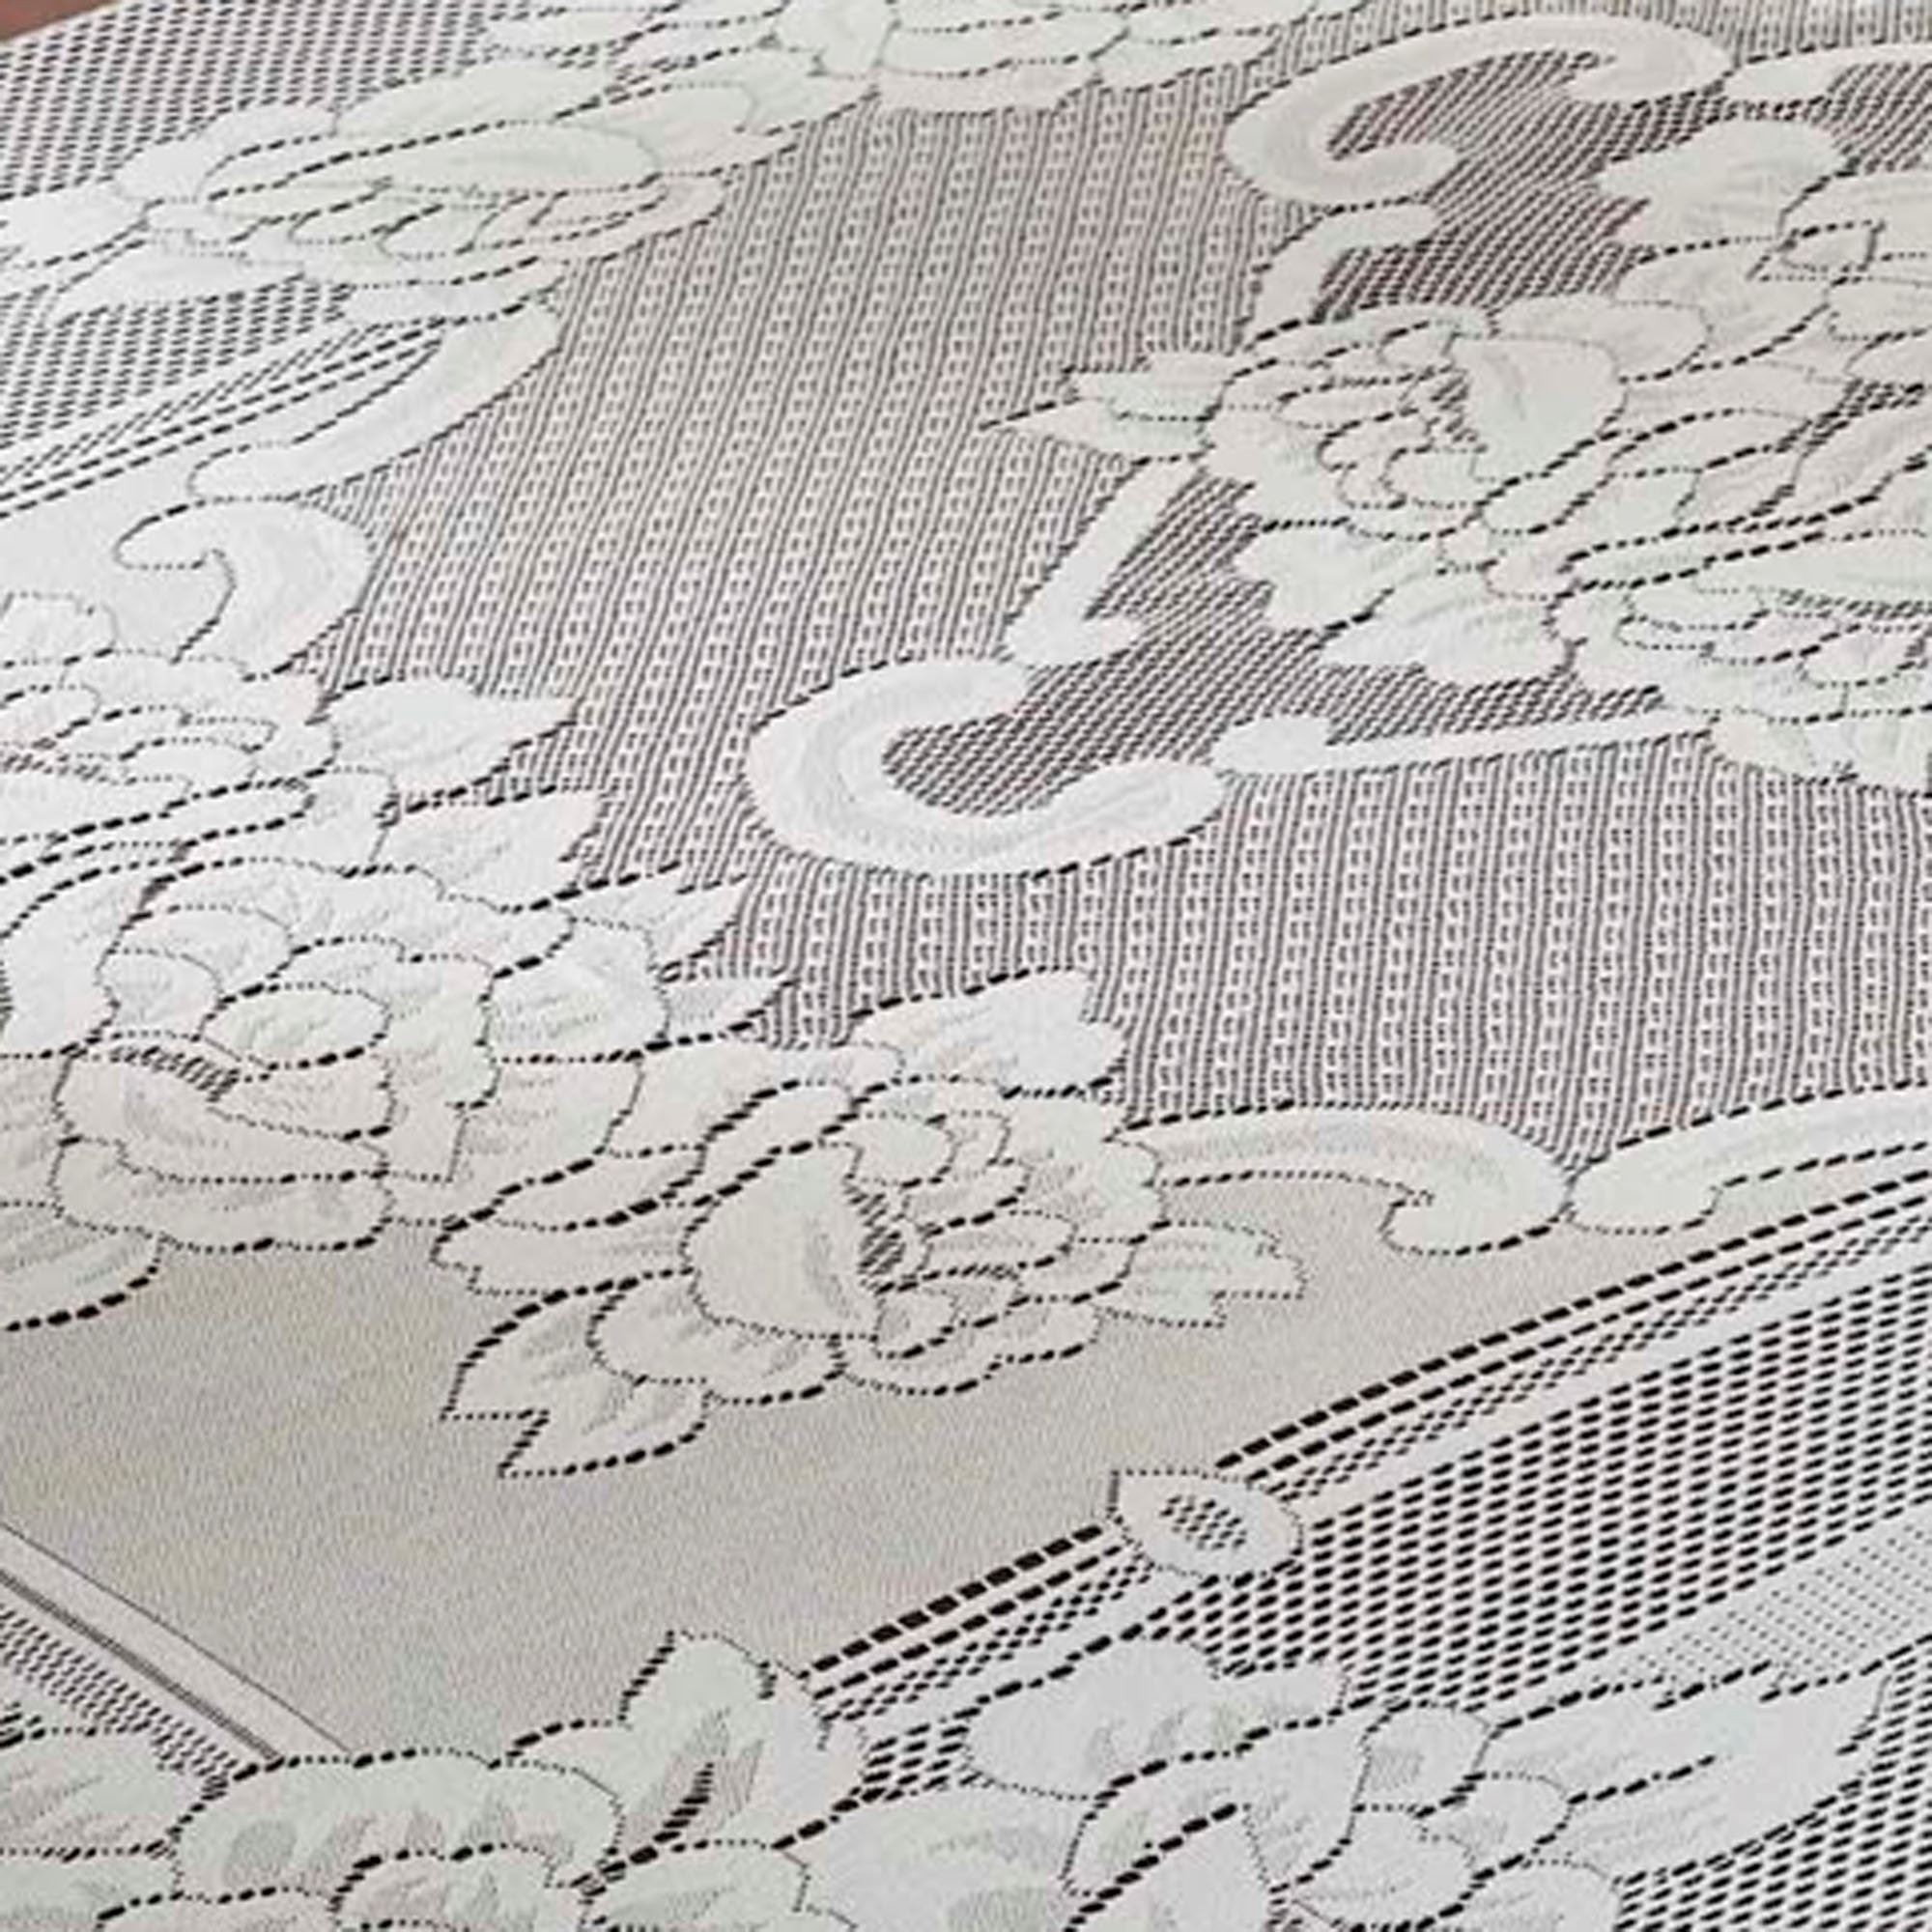 Lace Vinyl Tablecloth | Lace Tablecloths | Ivory Lace Tablecloths